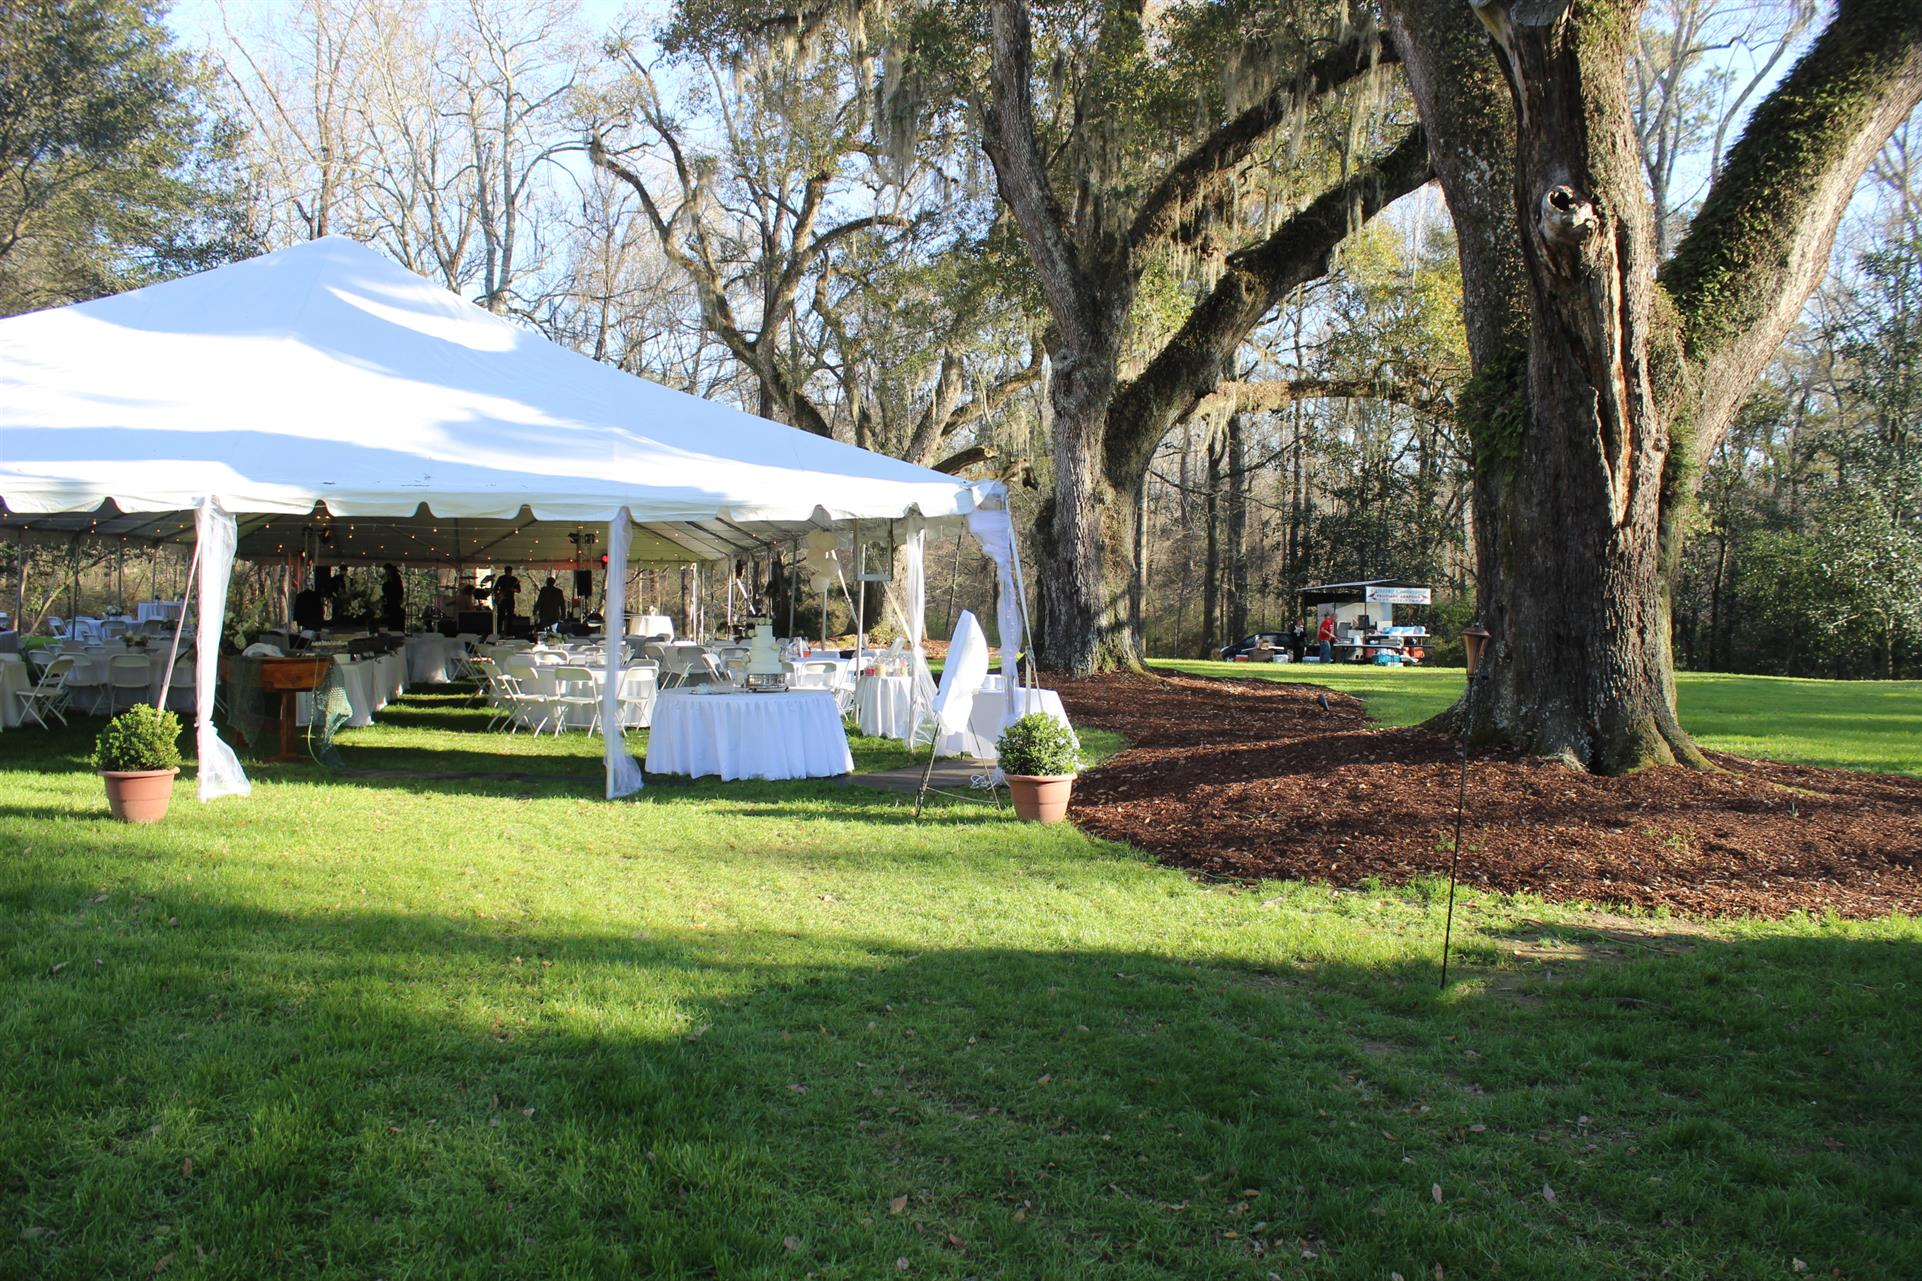 large tent set up wih tables and chairs set up underneath next to a tree